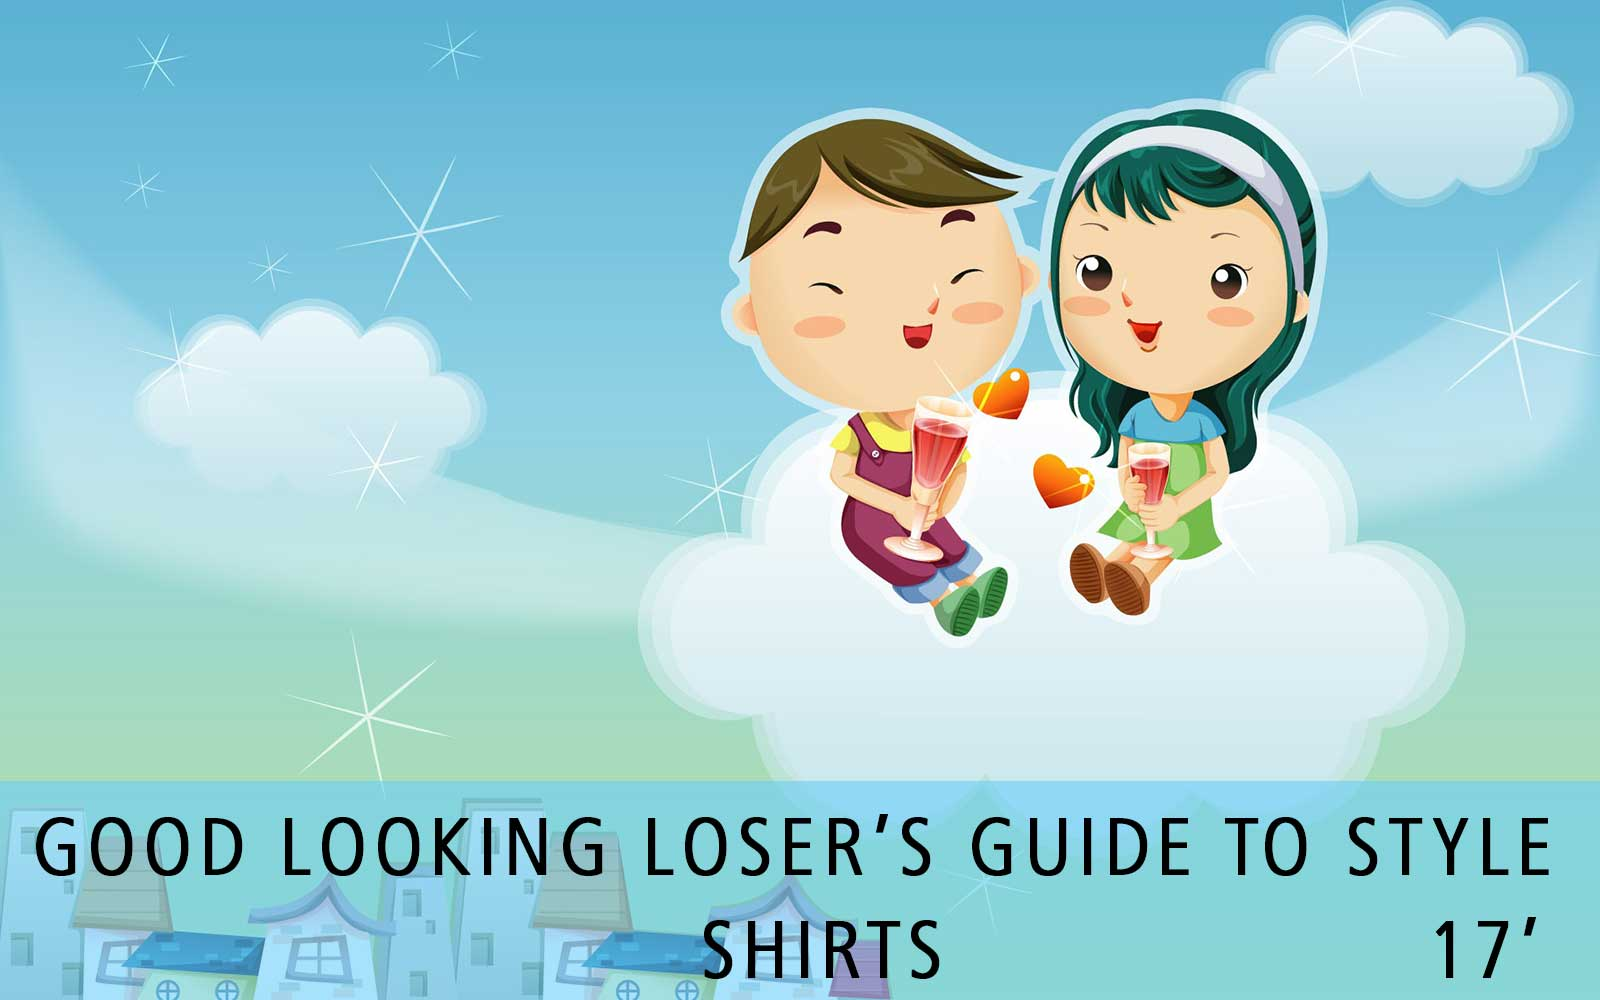 Good Looking Loser's Summer 2017 Guide to Style (Shirts)